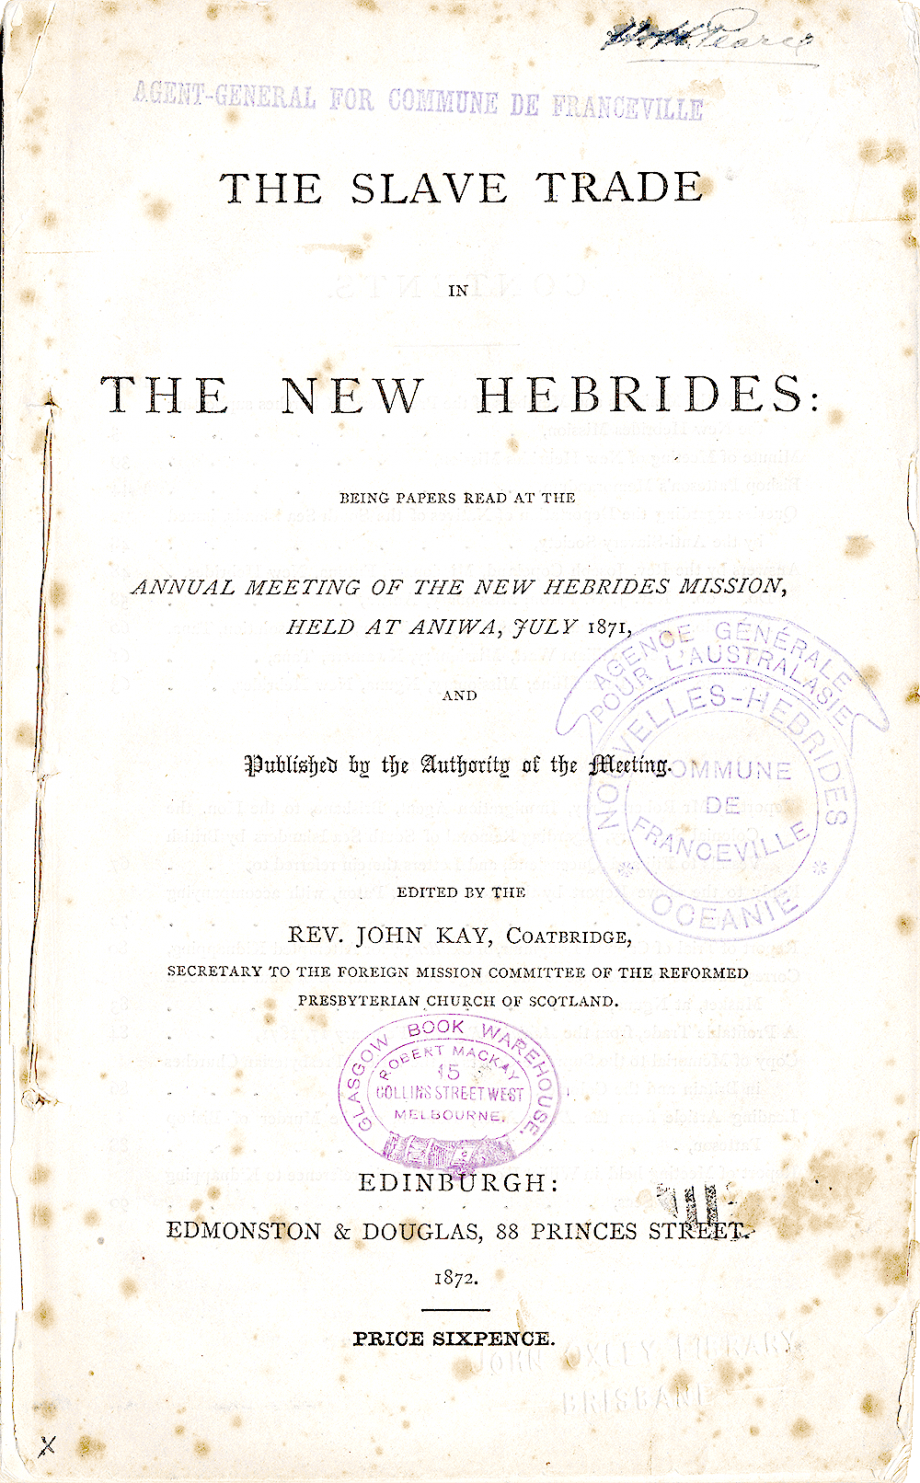 1872 The Slave Trade in the New Hebrides being papers read at the annual meeting of the New Hebrides Mission held at Aniwa July 1871  John Kay Reformed Presbyterian Church of Scotland New Hebrides Mission Annual meeting 1871  Aniwa New Hebrides Edinburgh  Edmonston  Douglas 1872 Catalogue record Digital copy